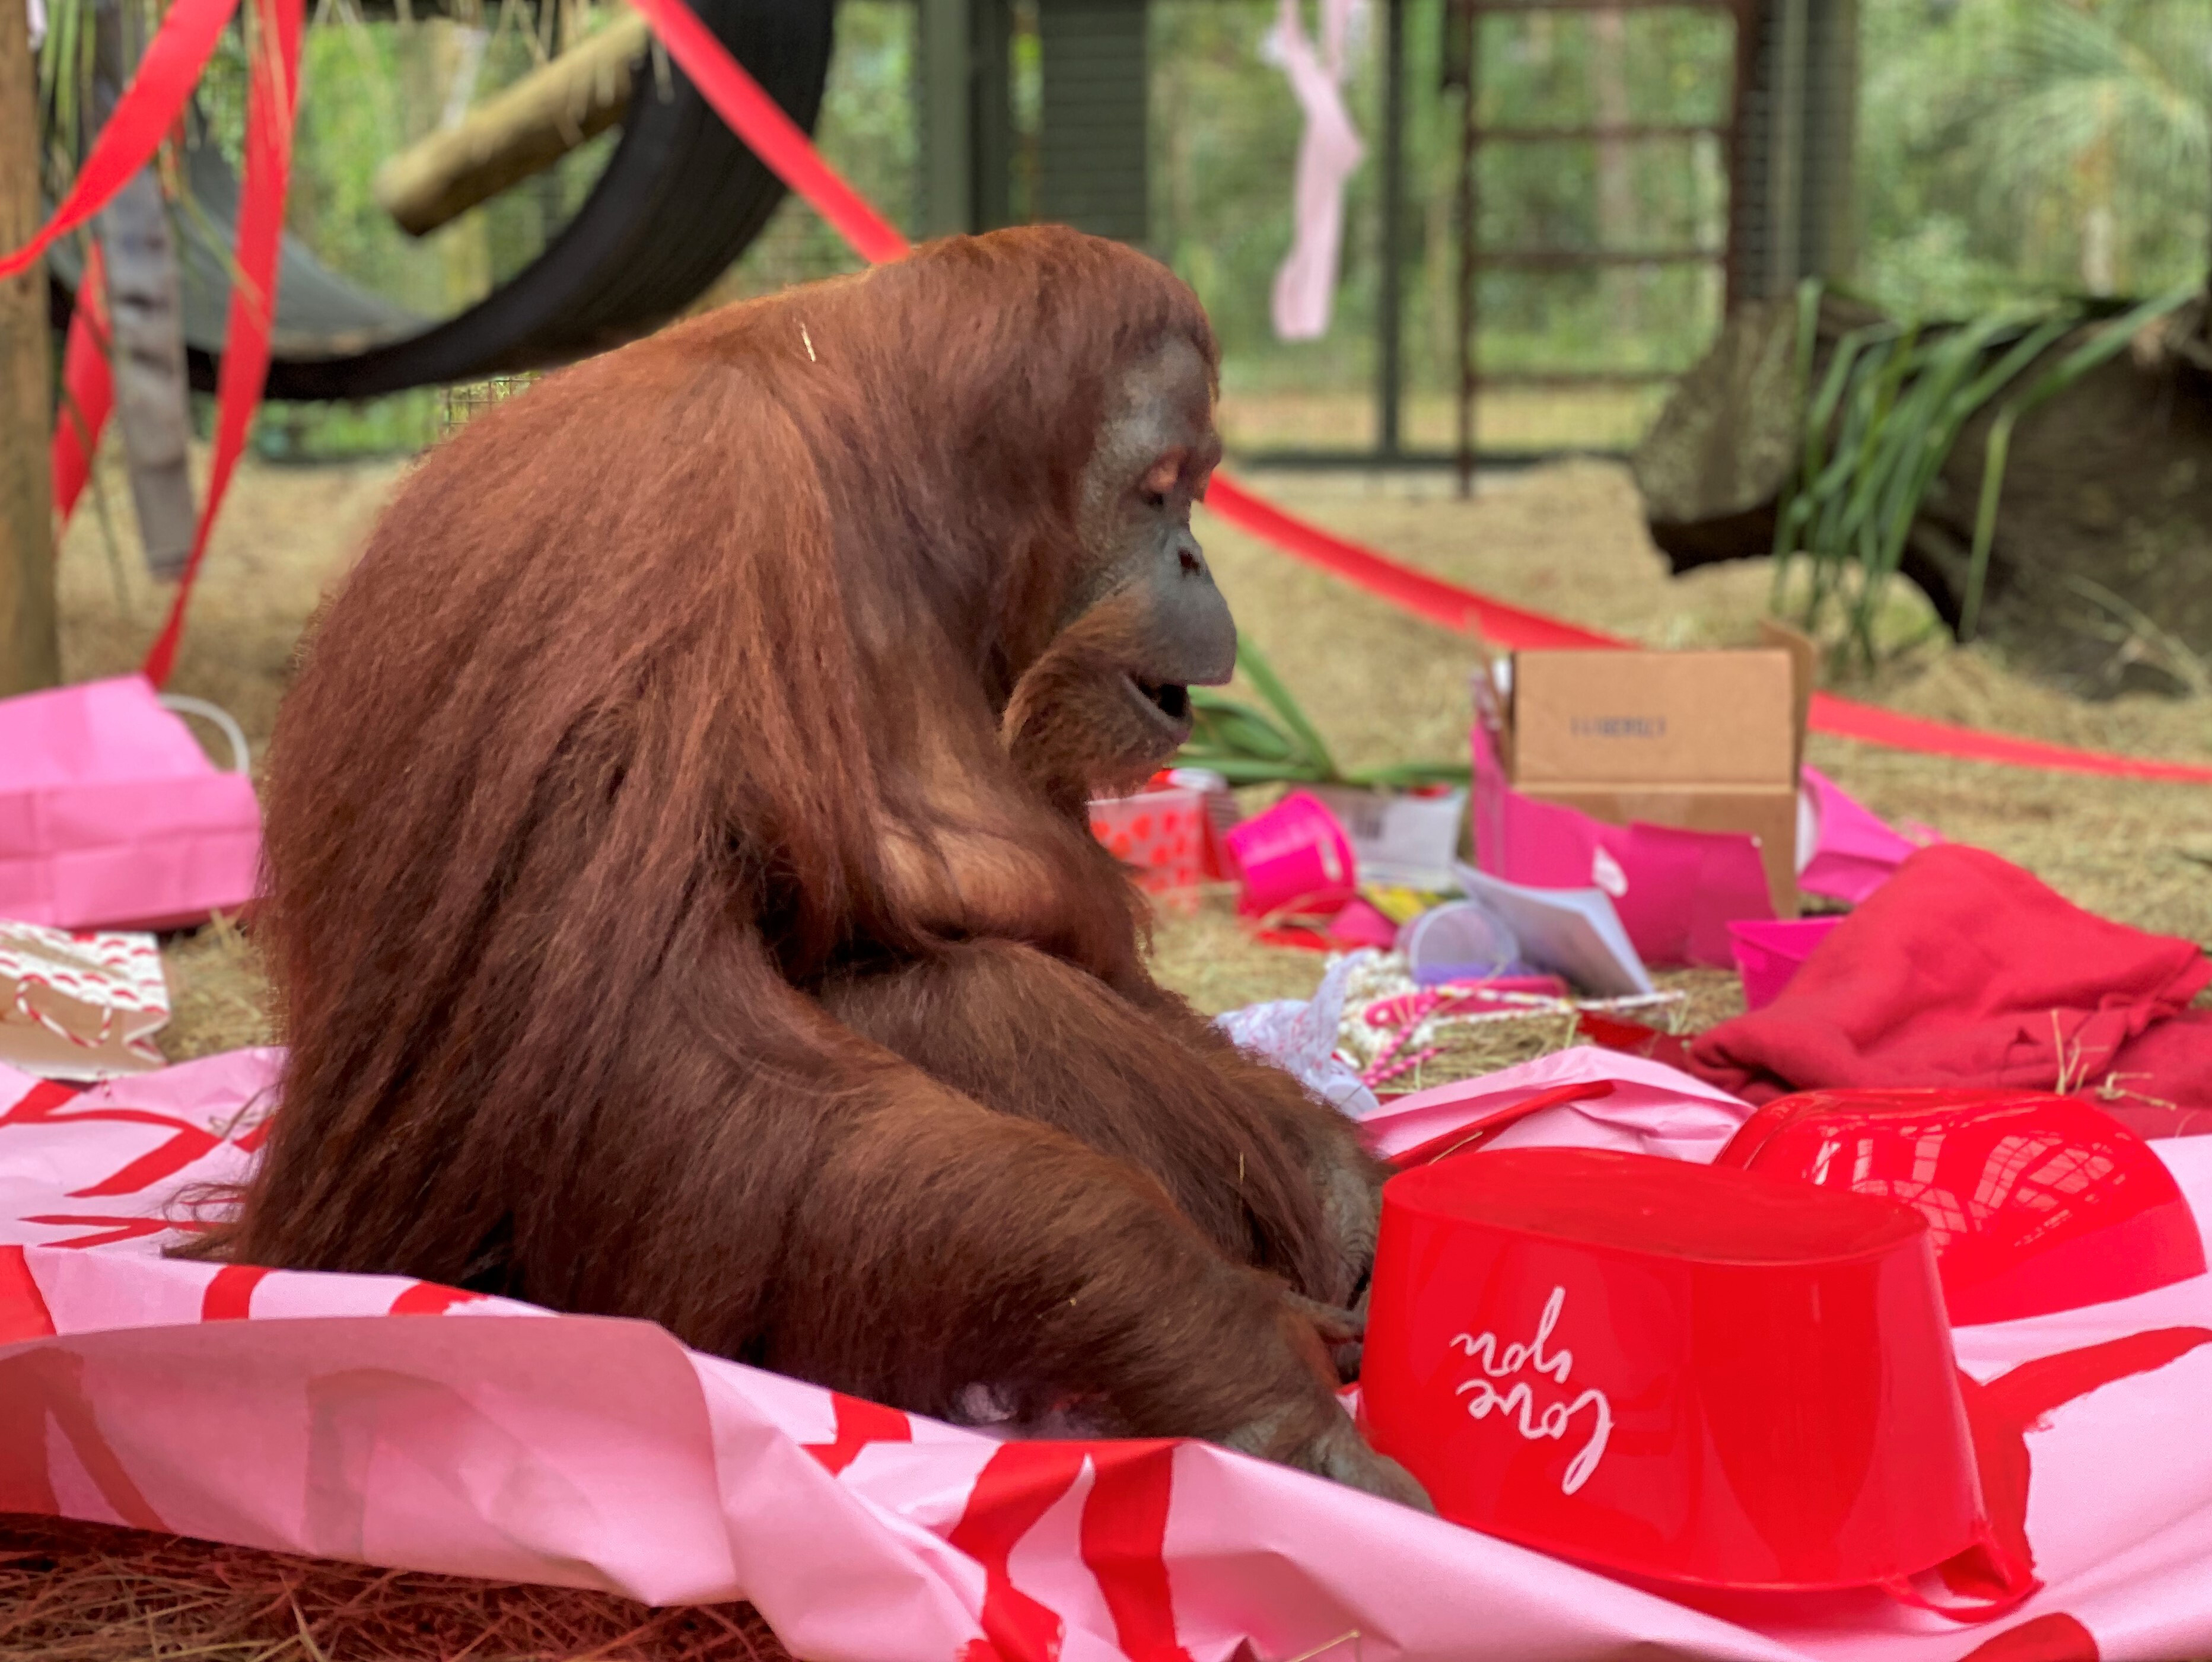 This photo, courtesy of the Center for Great Apes, shows an orangutan named Sandra in Wauchula, Fla., on Feb. 15, 2020.